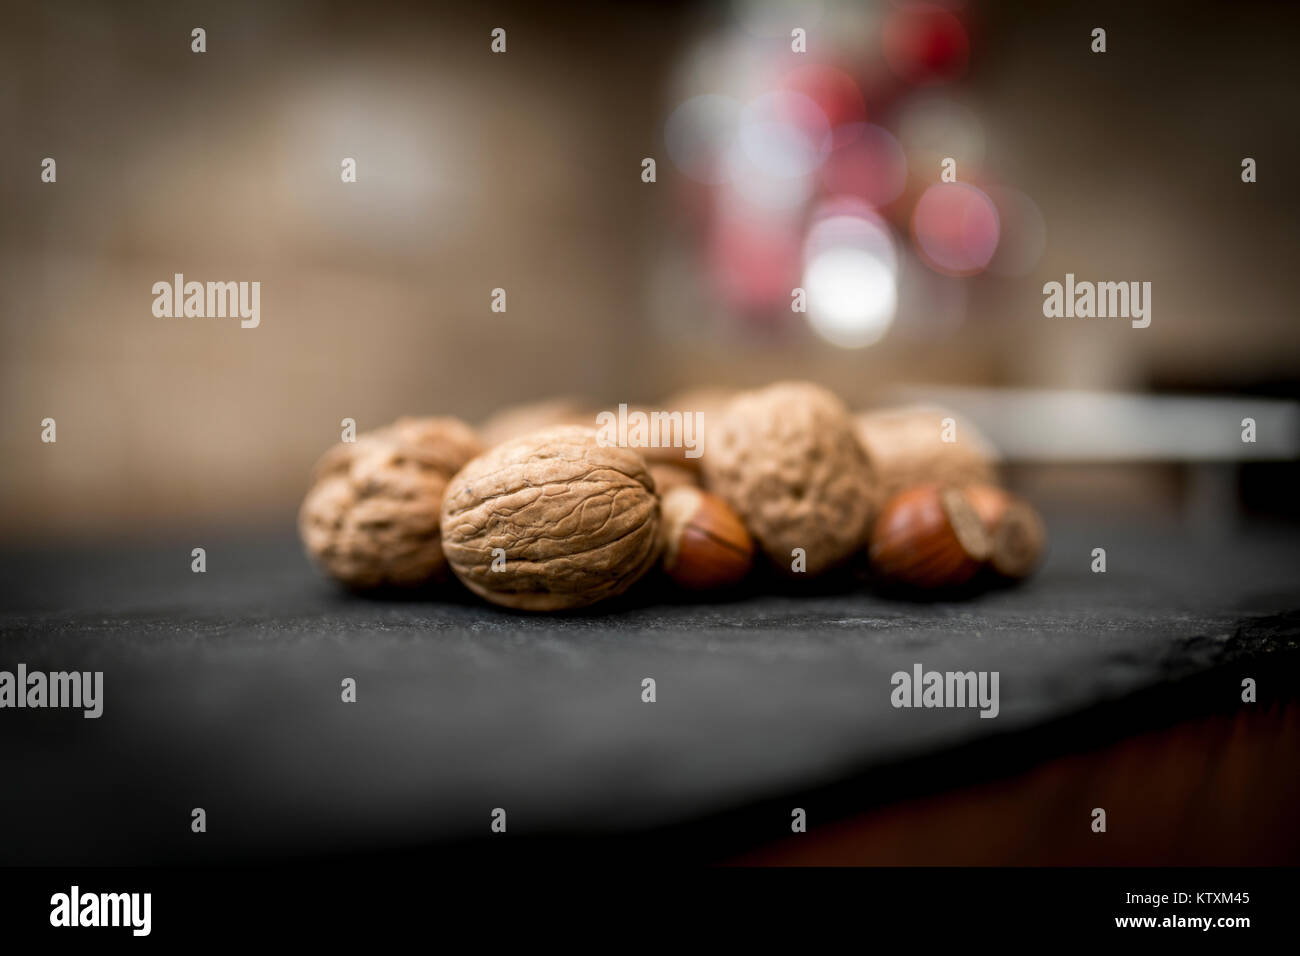 Mixed whole nuts in their shells including walnuts, hazelnuts, almonds and pecans with a short depth of field - Stock Image